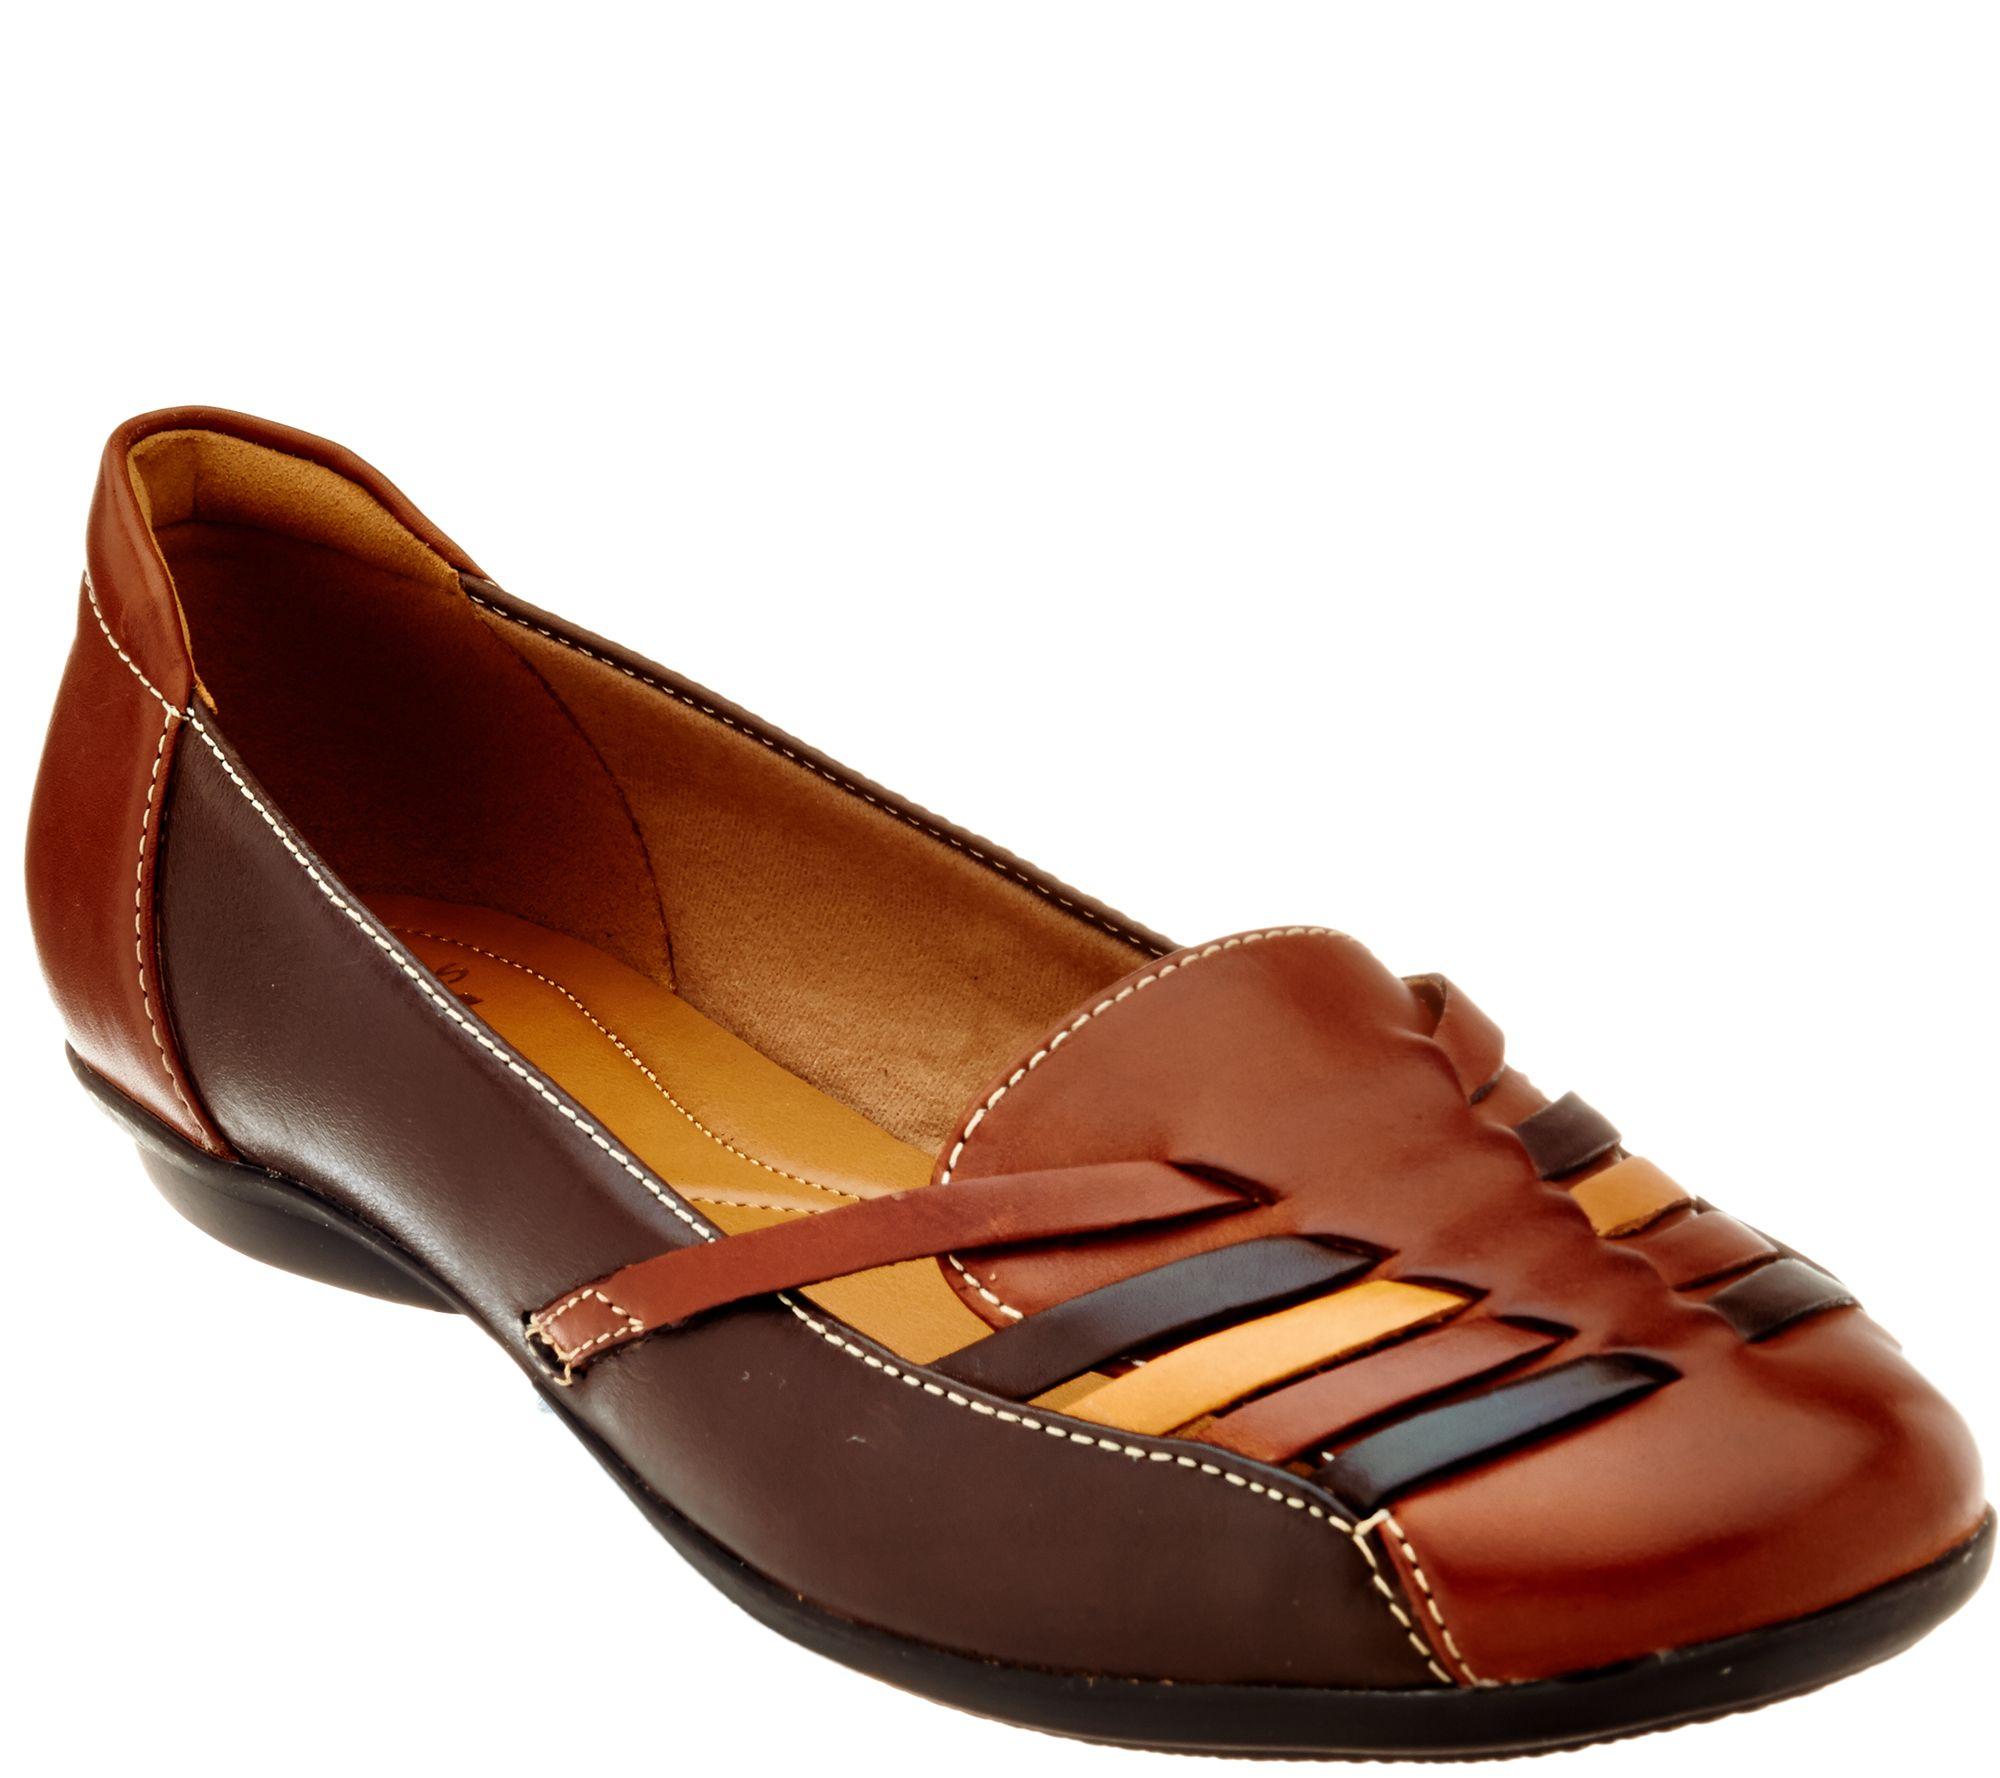 Clarks Leather Flats with Woven Detail - Gracelin Gemma - A287339